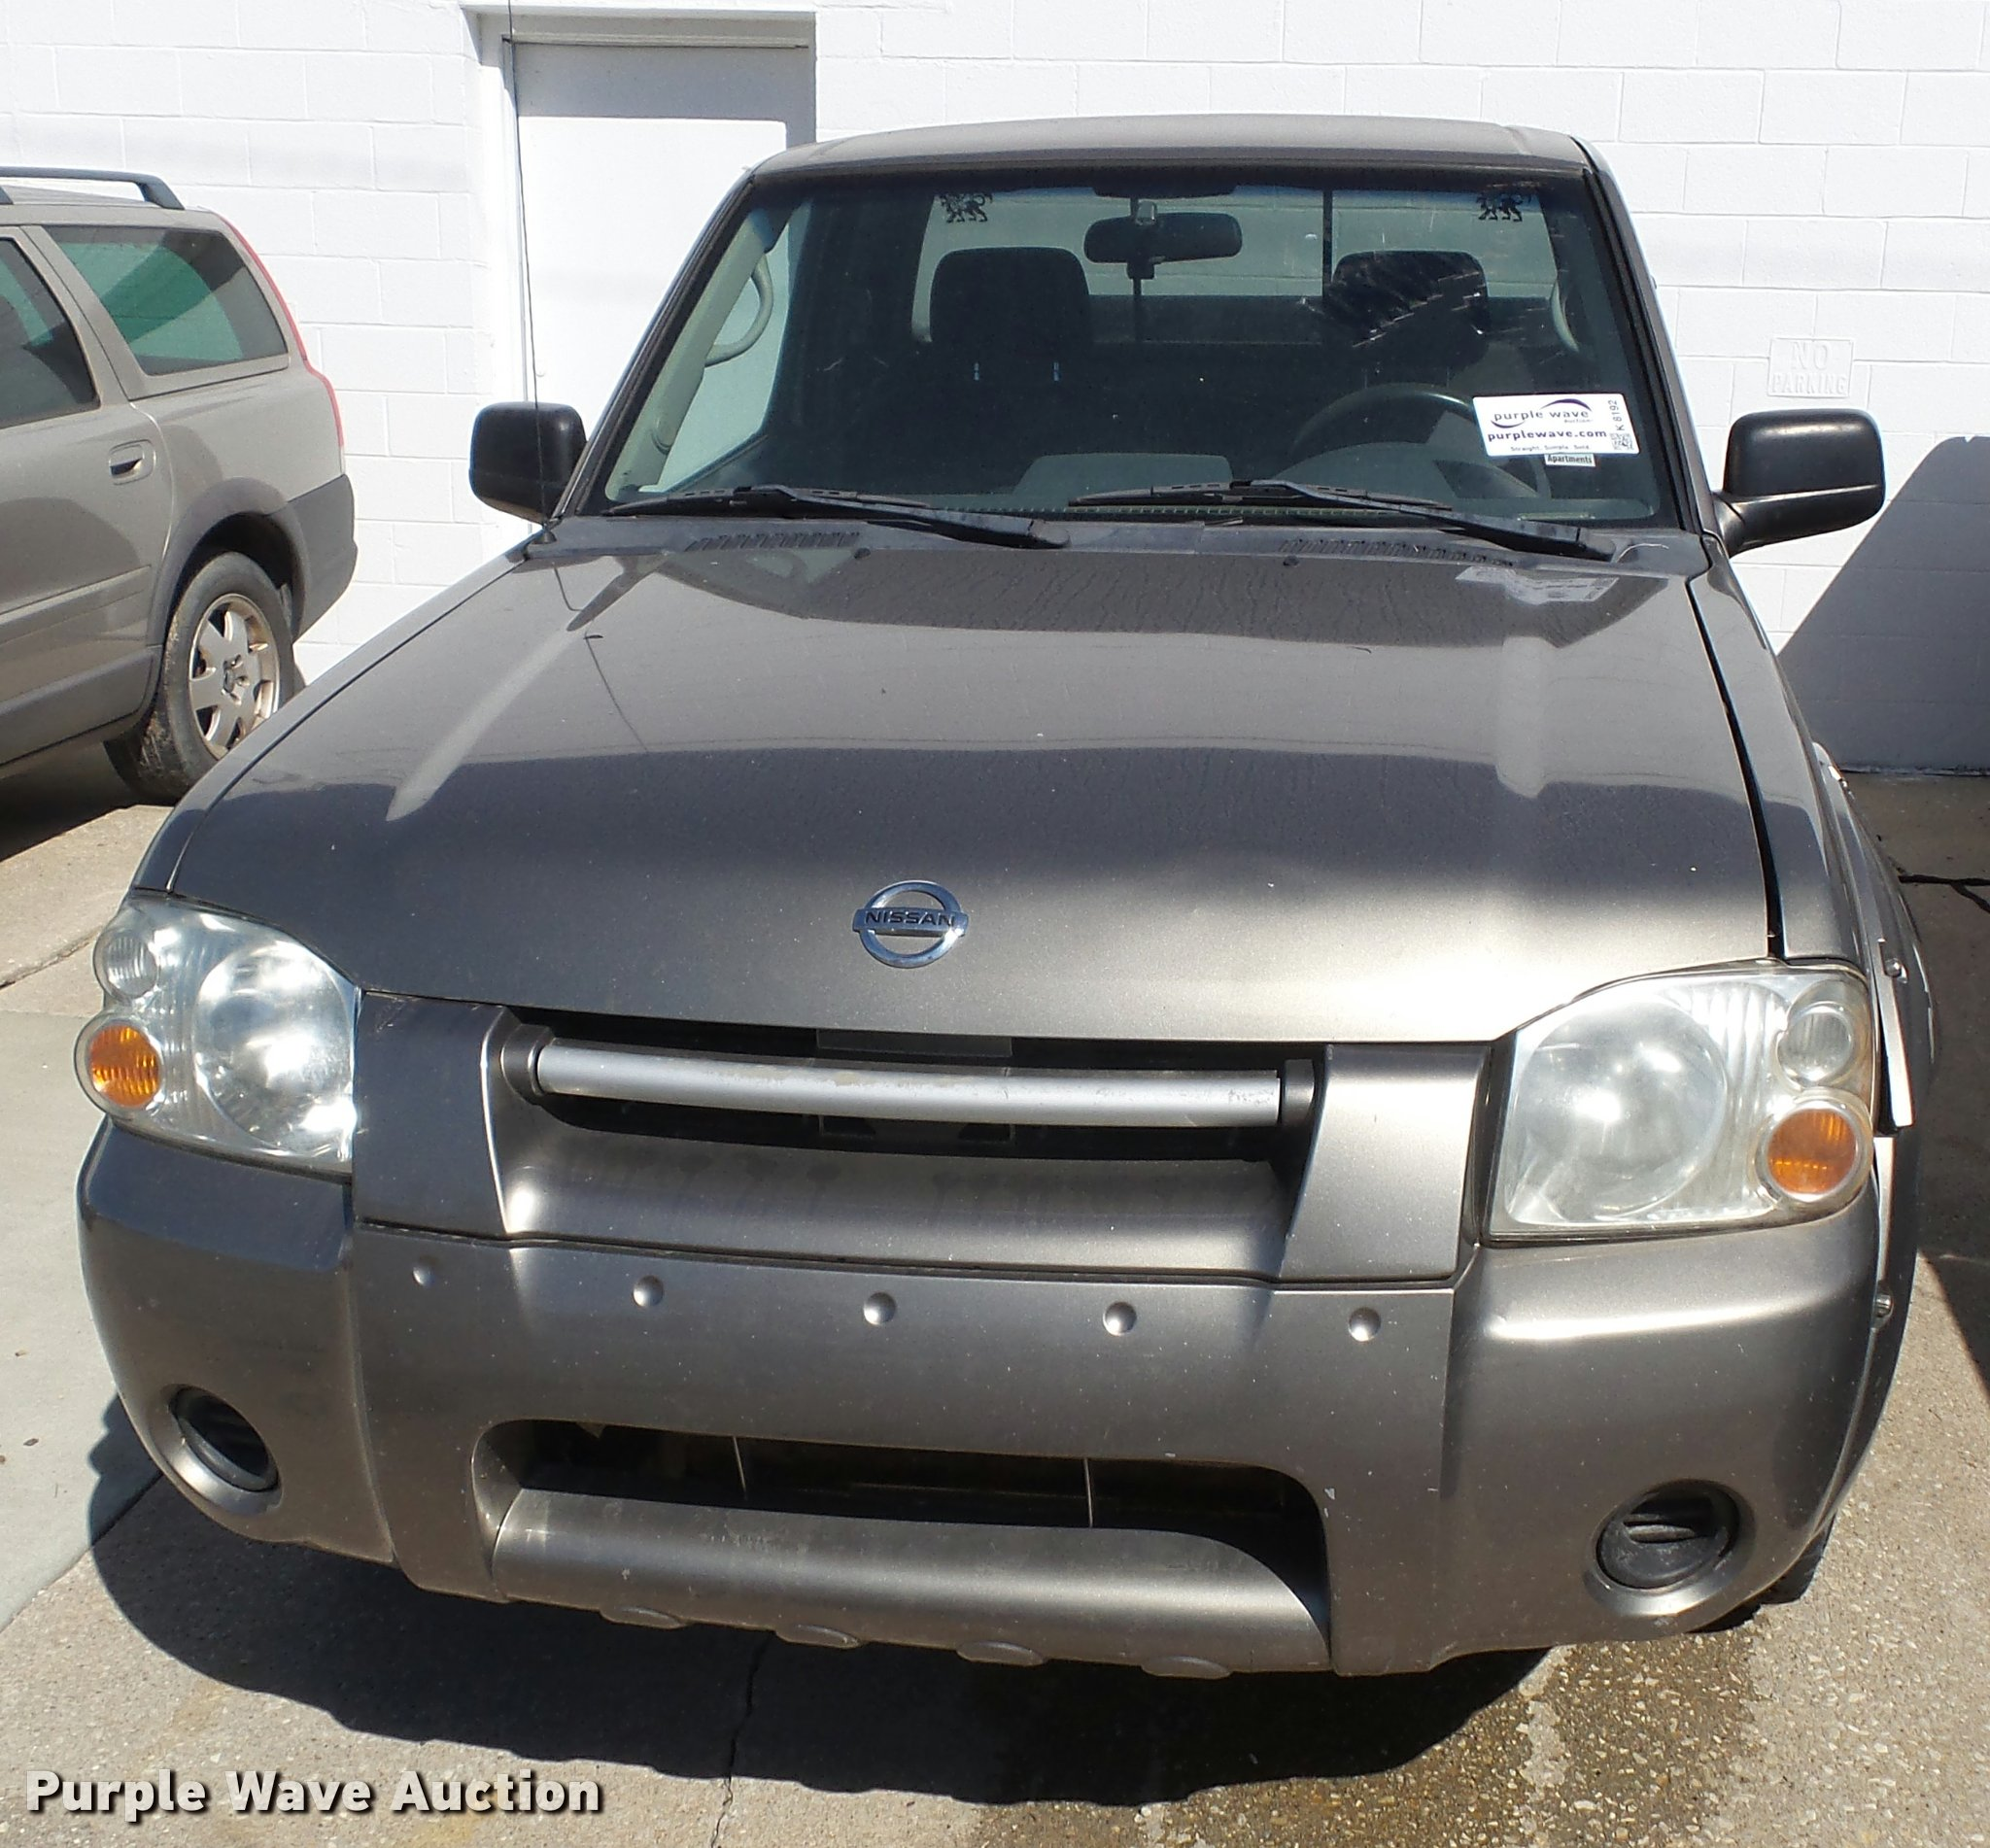 2004 nissan frontier king cab pickup truck item k8192 so 2004 nissan frontier king cab pickup truck full size in new window vanachro Image collections